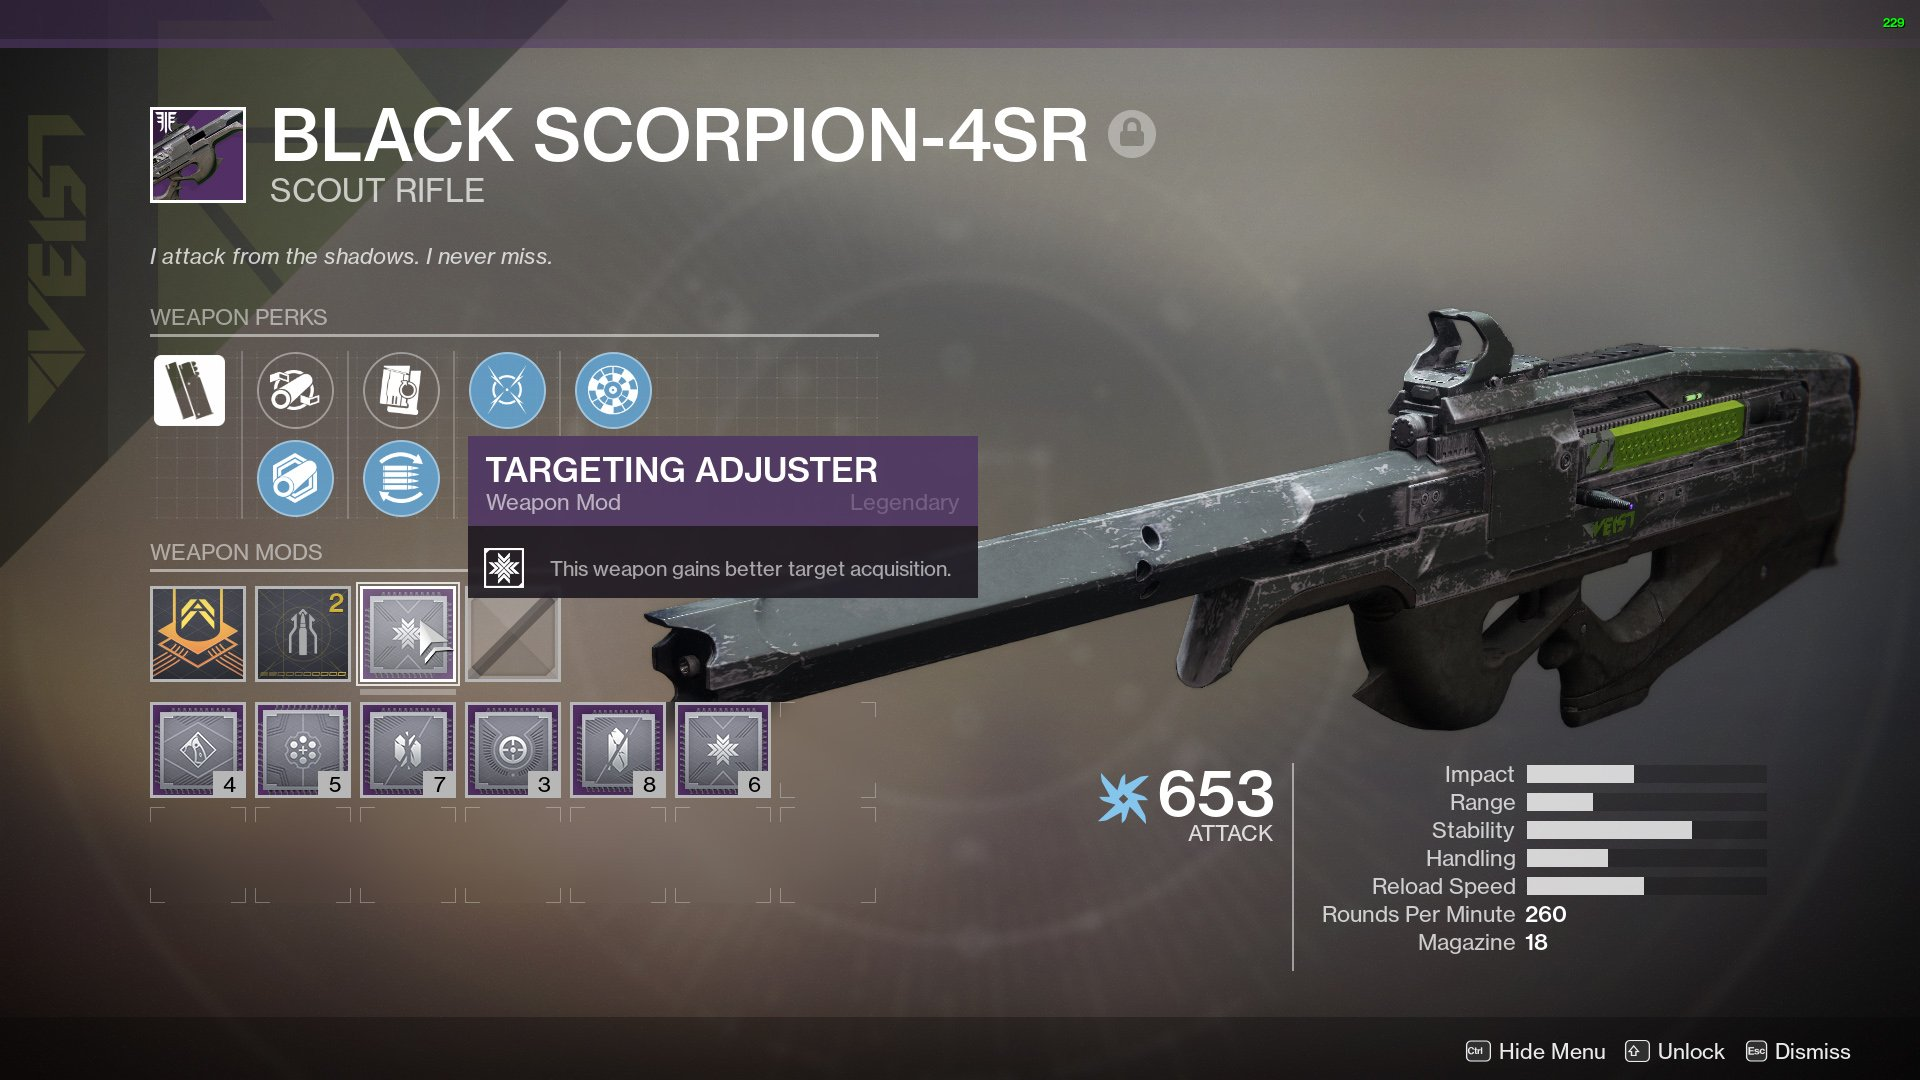 Black Scorpion-4SR god roll